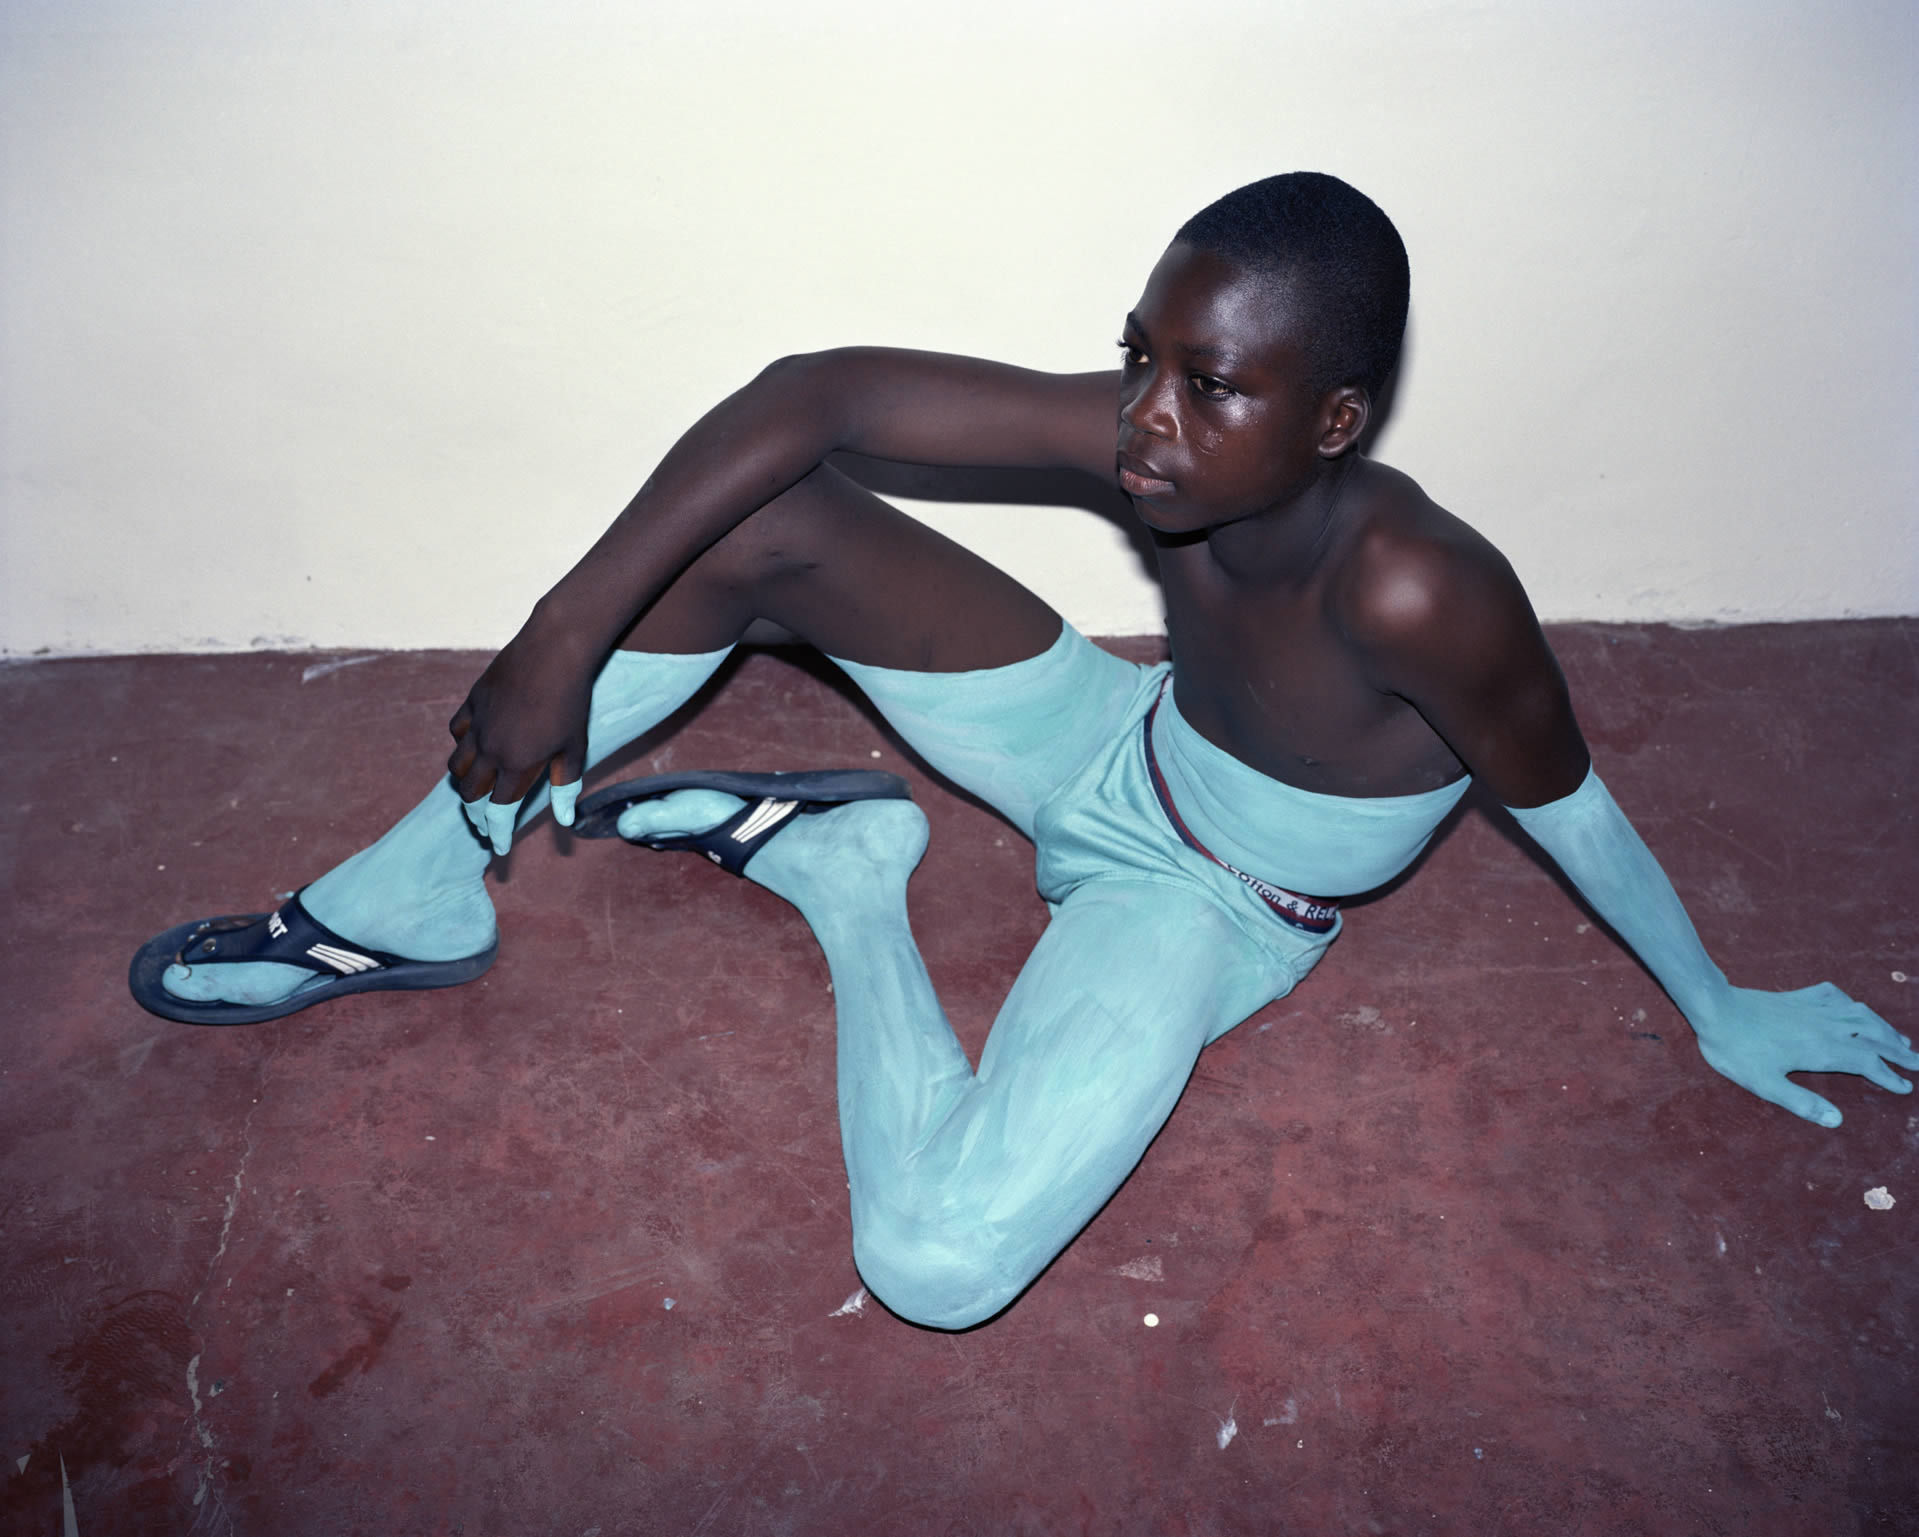 turquoise pants and sleeve, illusion, photo by viviane sassen